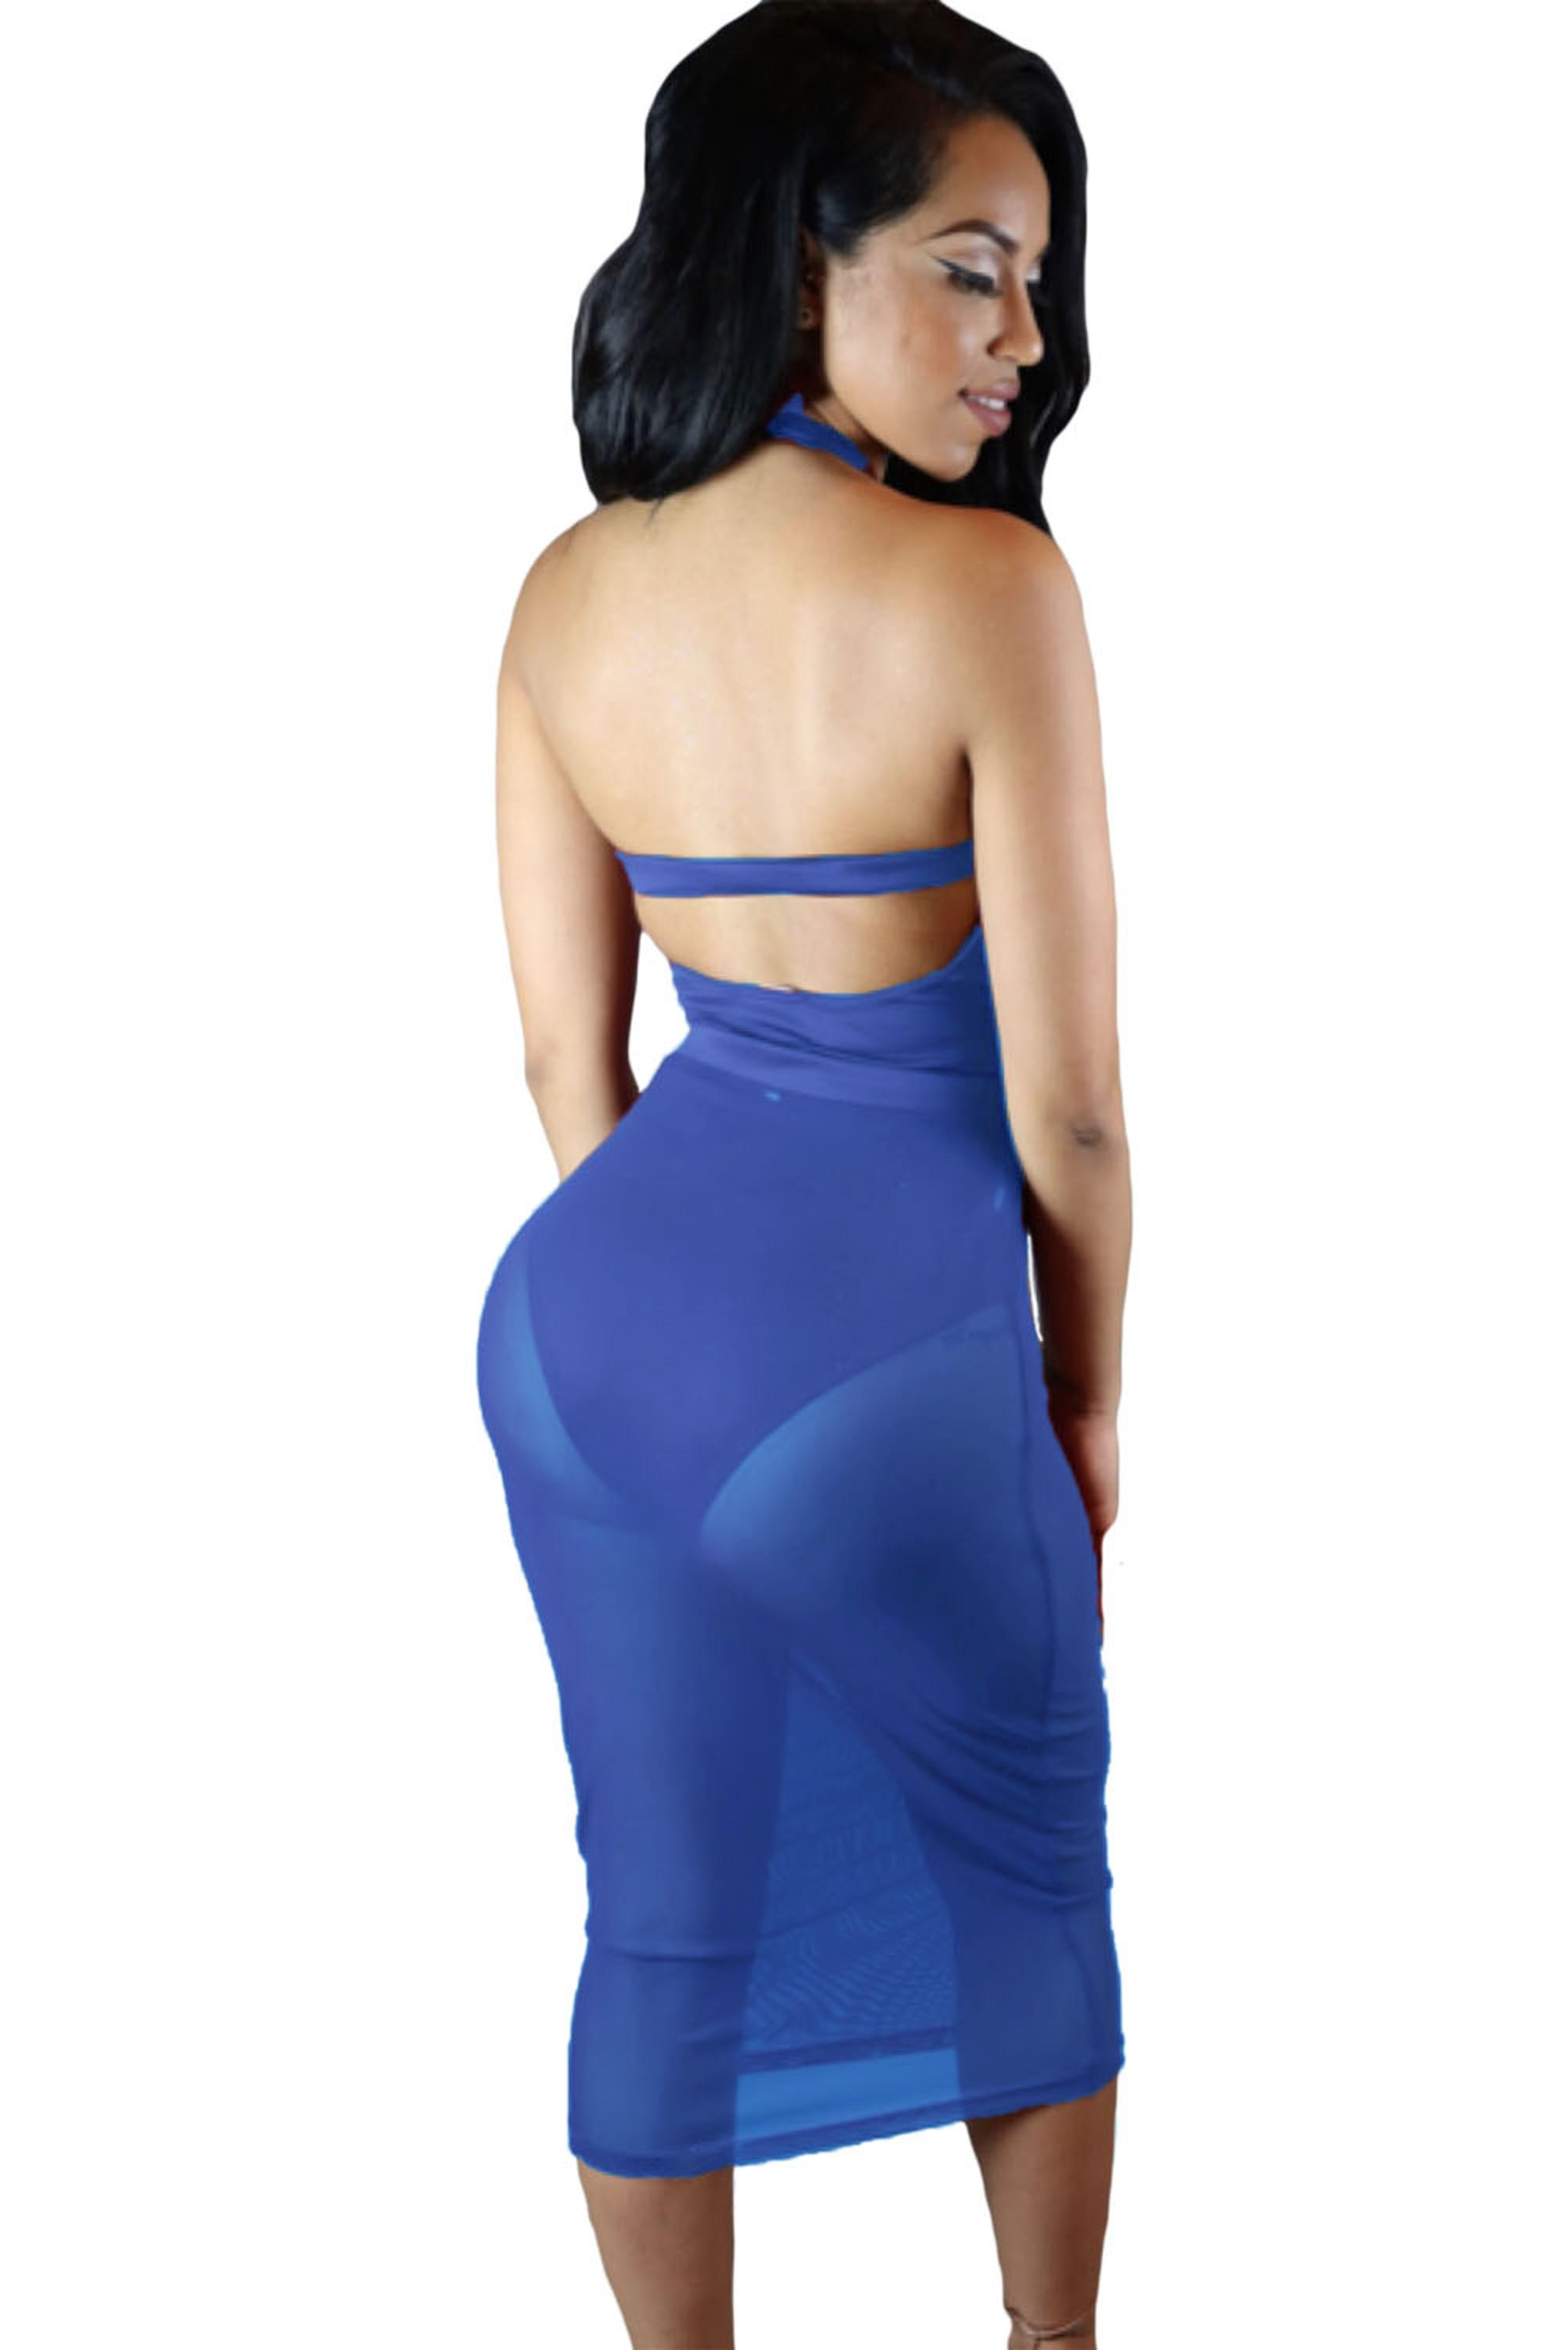 Blue-Caged-Bandage-Bodysuit-with-Sheer-Mesh-Skirt-LC64013-5-2